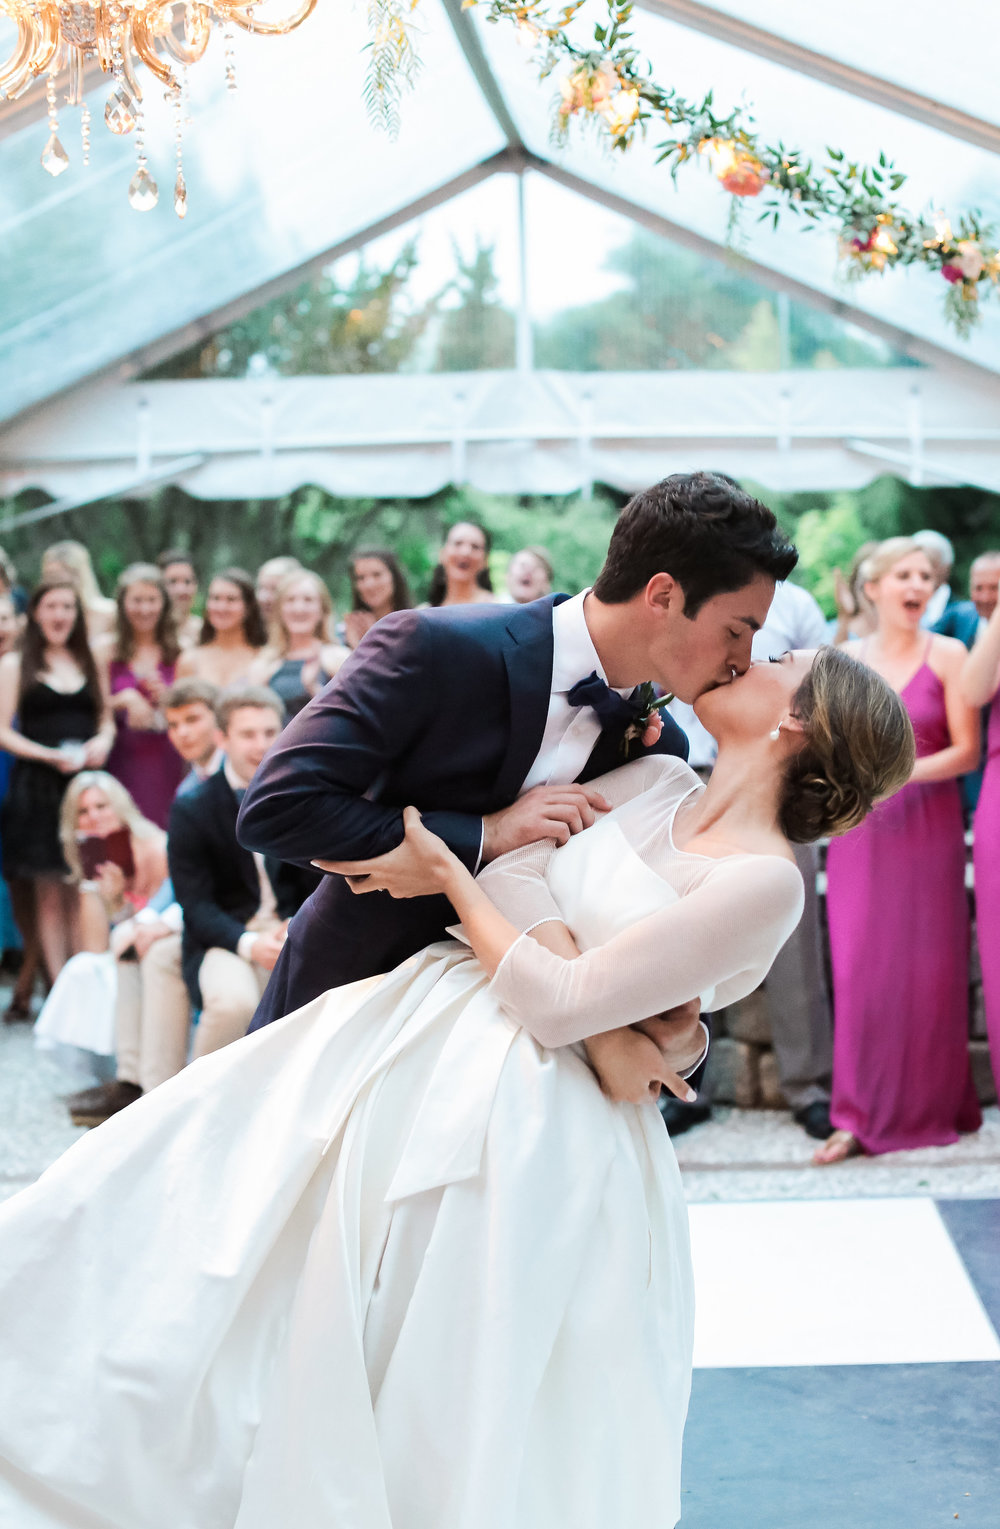 Simply Jessica Marie Bride | Colorful Classic Charleston Wedding by Landon Jacob Photography